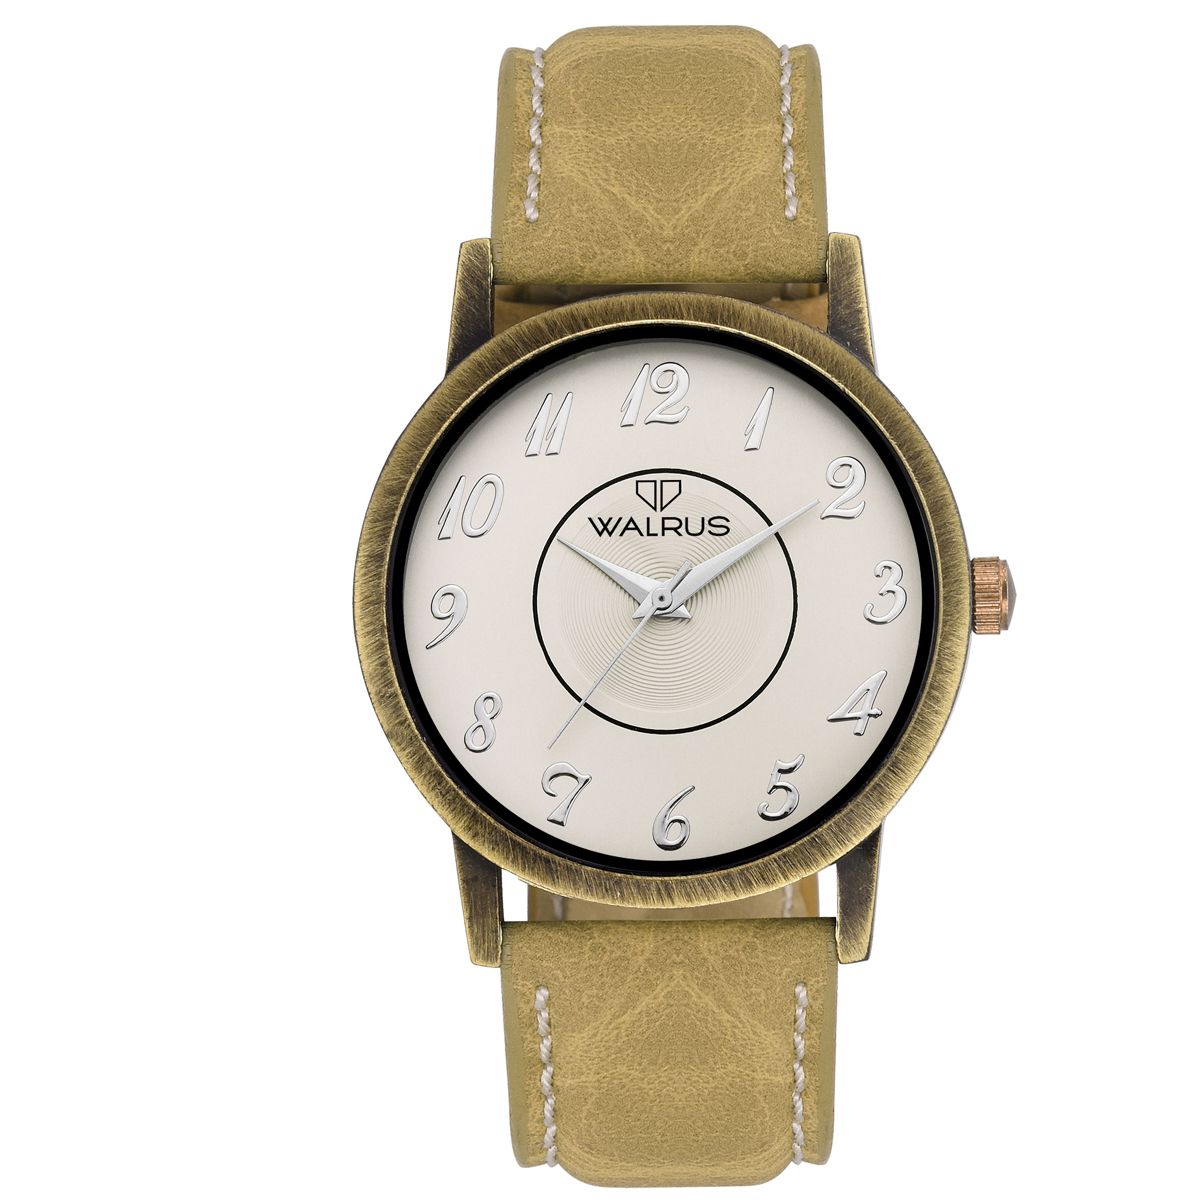 Walrus Lucas White Color Analog Men Watch -WWM-LCS-011631